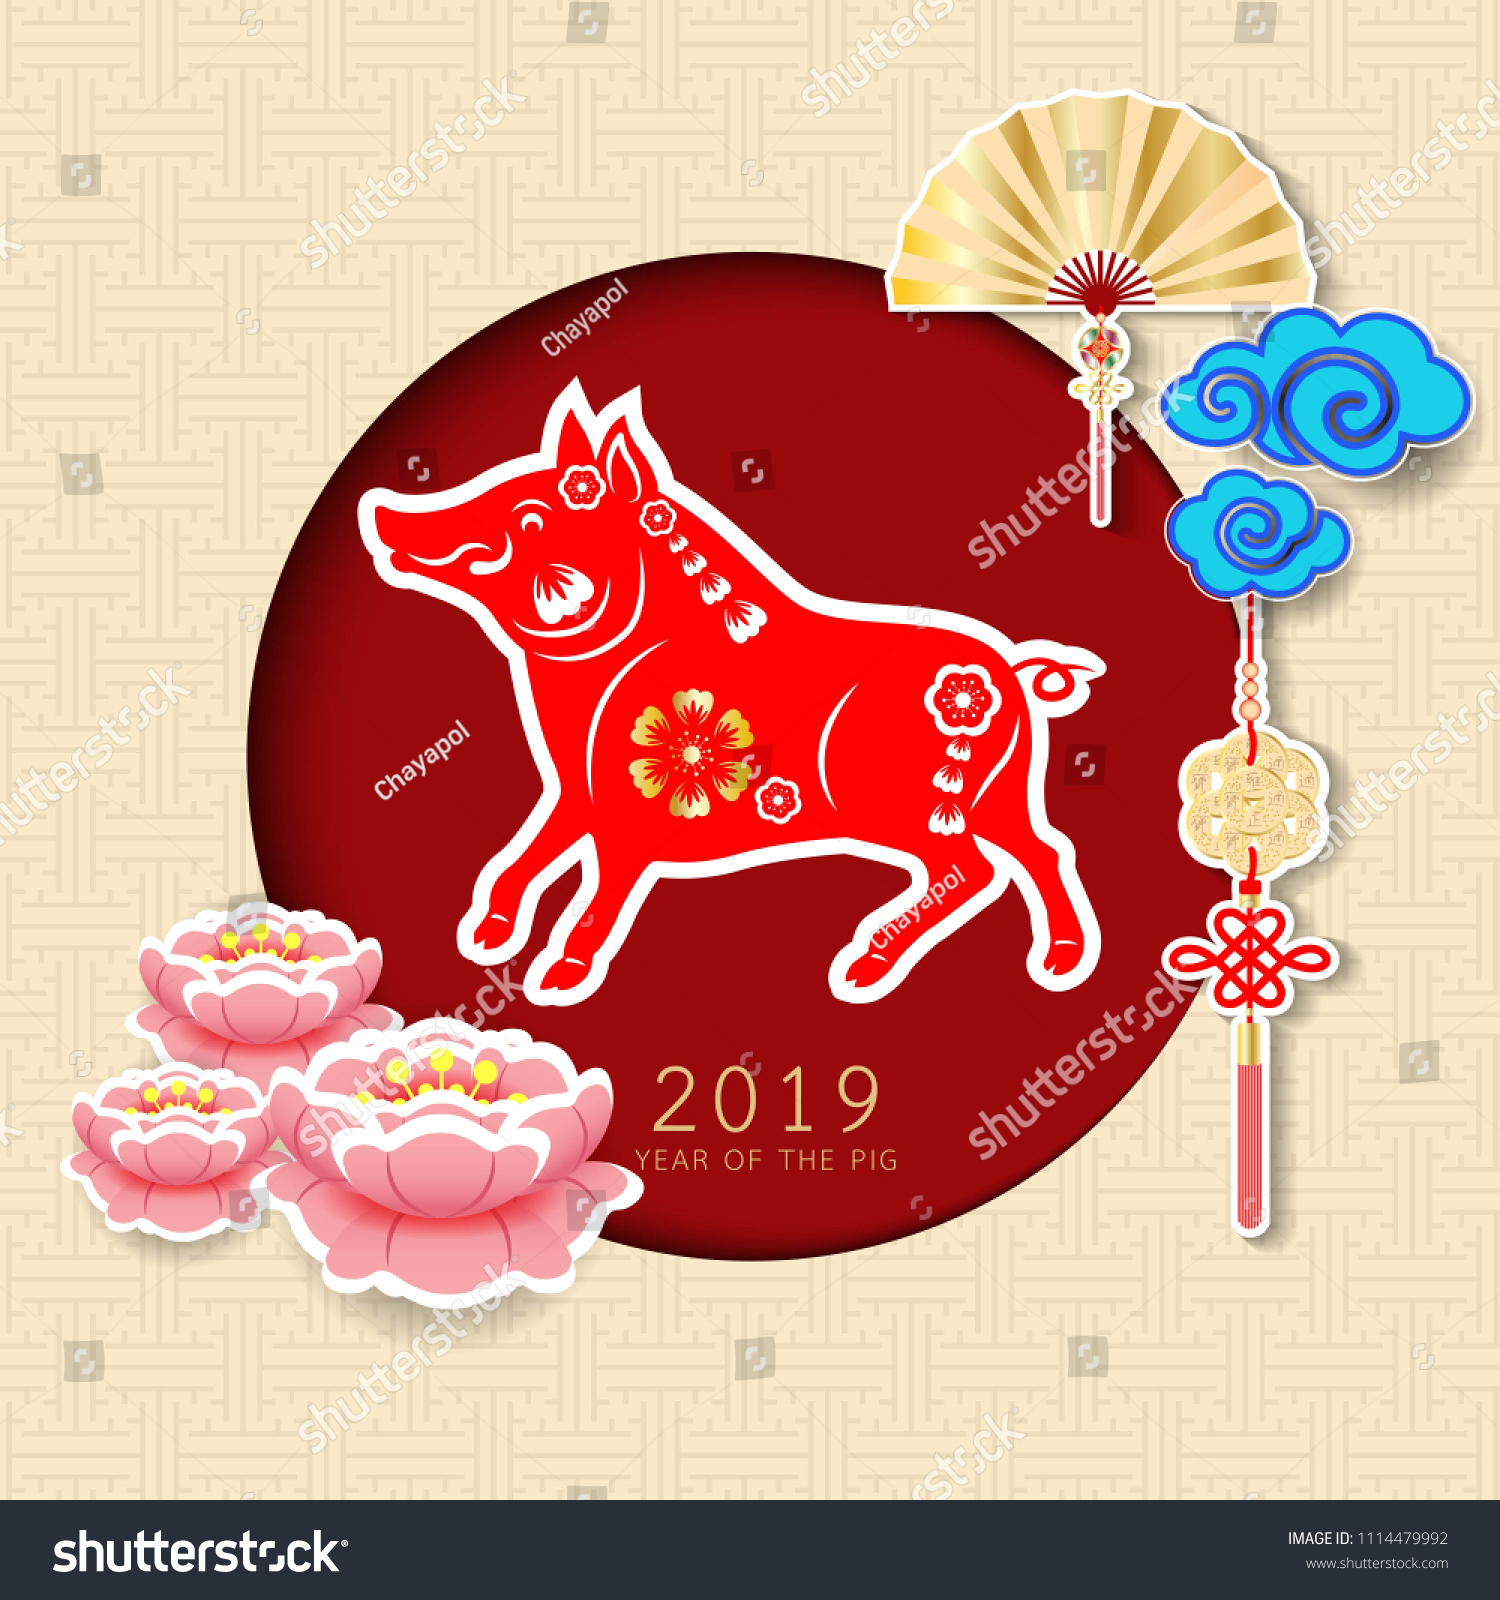 Happy Chinese New Year 2019 Year Of The Pig With